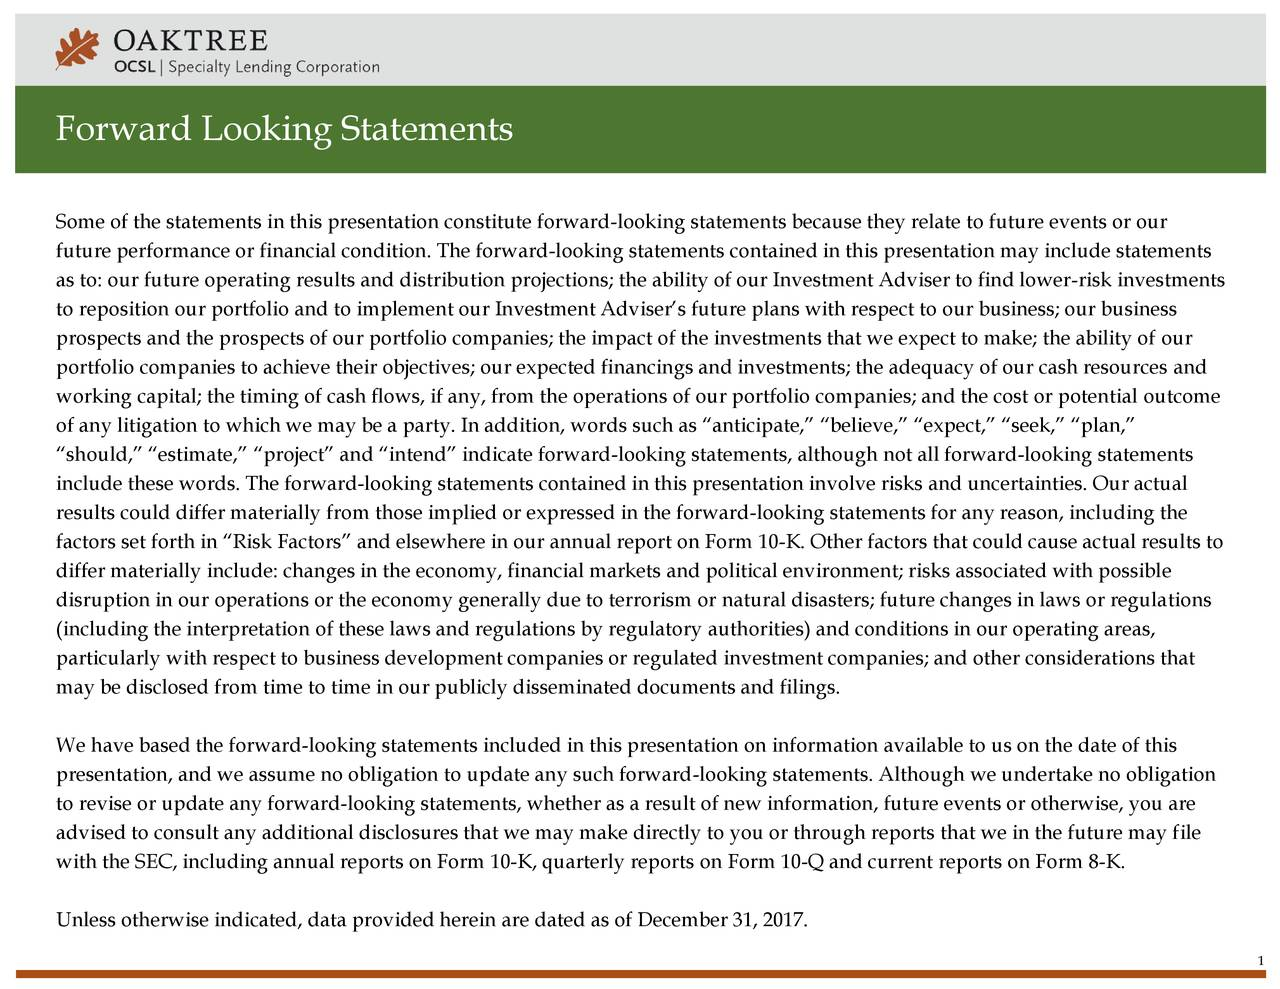 """Some of the statements in this presentation constitute forward-looking statements because they relate to future events or our future performance or financial condition. The forward-looking statements contained in this presentation may include statements as to: our future operating results and distribution projections; the ability of our Investment Adviser to find lower-risk investments to reposition our portfolio and to implement our Investment Adviser's future plans with respect to our business; our business prospects and the prospects of our portfolio companies; the impact of the investments that we expect to make; the ability of our portfolio companies to achieve their objectives; our expected financings and investments; the adequacy of our cash resources and working capital; the timing of cash flows, if any, from the operations of our portfolio companies; and the cost or potential outcome of any litigation to which we may be a party. In addition, words such as """"anticipate,"""" """"believe,"""" """"expect,"""" """"seek,"""" """"plan,"""" """"should,"""" """"estimate,"""" """"project"""" and """"intend"""" indicate forward-looking statements, although not all forward-looking statements include these words. The forward-looking statements contained in this presentation involve risks and uncertainties. Our actual results could differ materially from those implied or expressed in the forward-looking statements for any reason, including the factors set forth in """"Risk Factors"""" and elsewhere in our annual report on Form 10-K. Other factors that could cause actual results to differ materially include: changes in the economy, financial markets and political environment; risks associated with possible disruption in our operations or the economy generally due to terrorism or natural disasters; future changes in laws or regulations (including the interpretation of these laws and regulations by regulatory authorities) and conditions in our operating areas, particularly with respect to business development companies or regulate"""